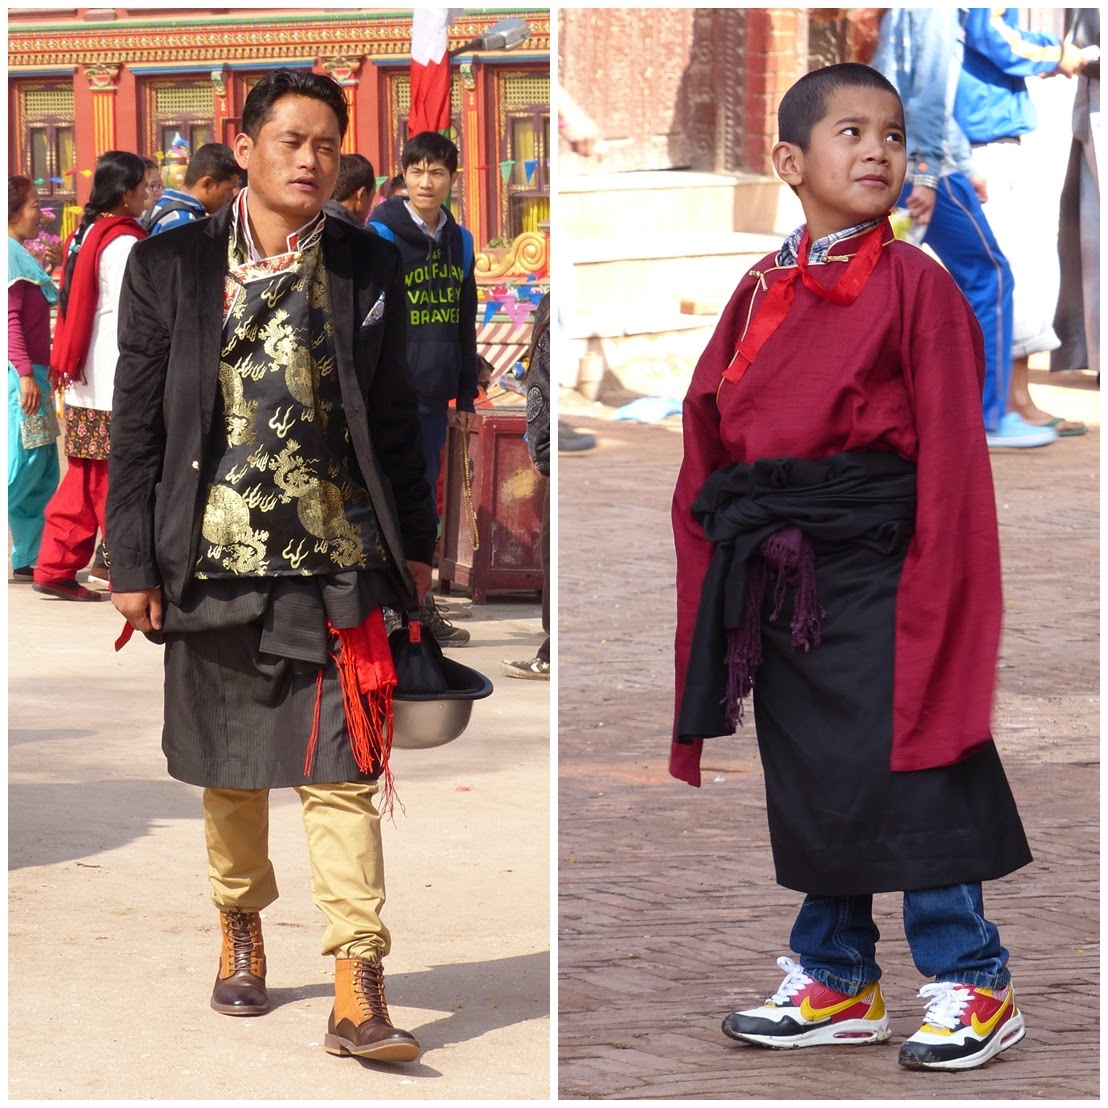 Guys in traditional Tibetan dress